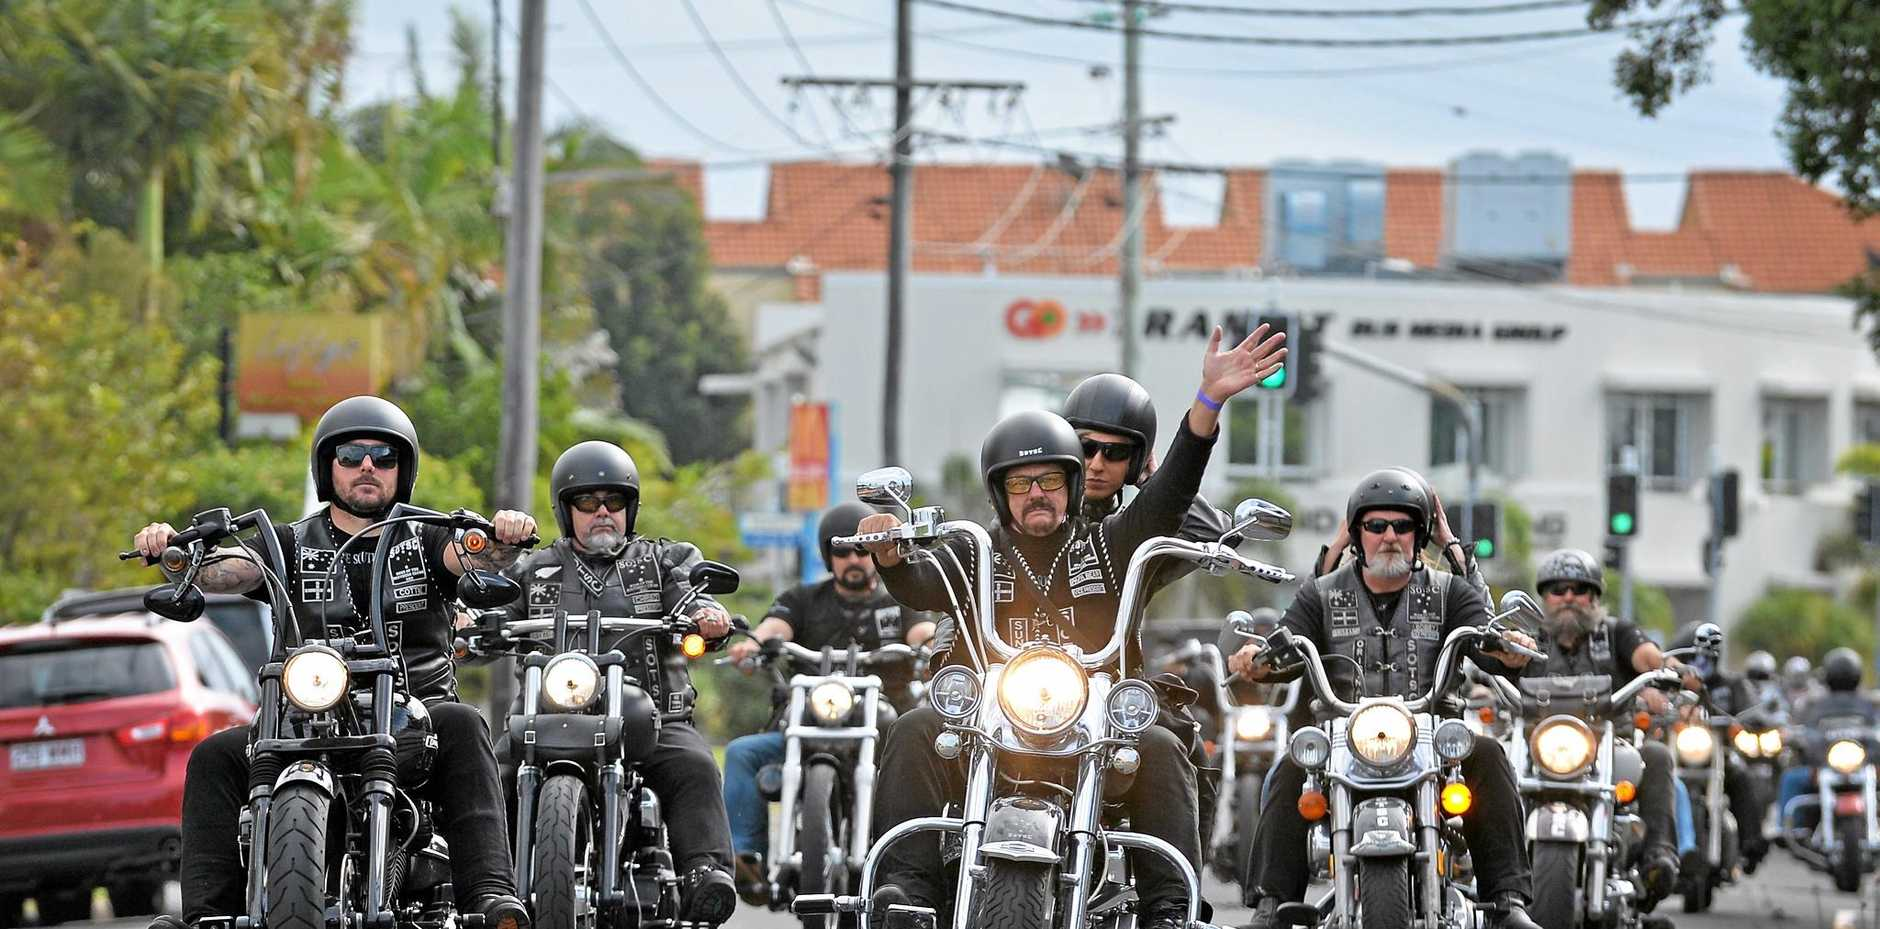 SUPPORT: Sons of the Southern Cross Motorcycle Club members ride in Lyla Van Jole's charity ride.